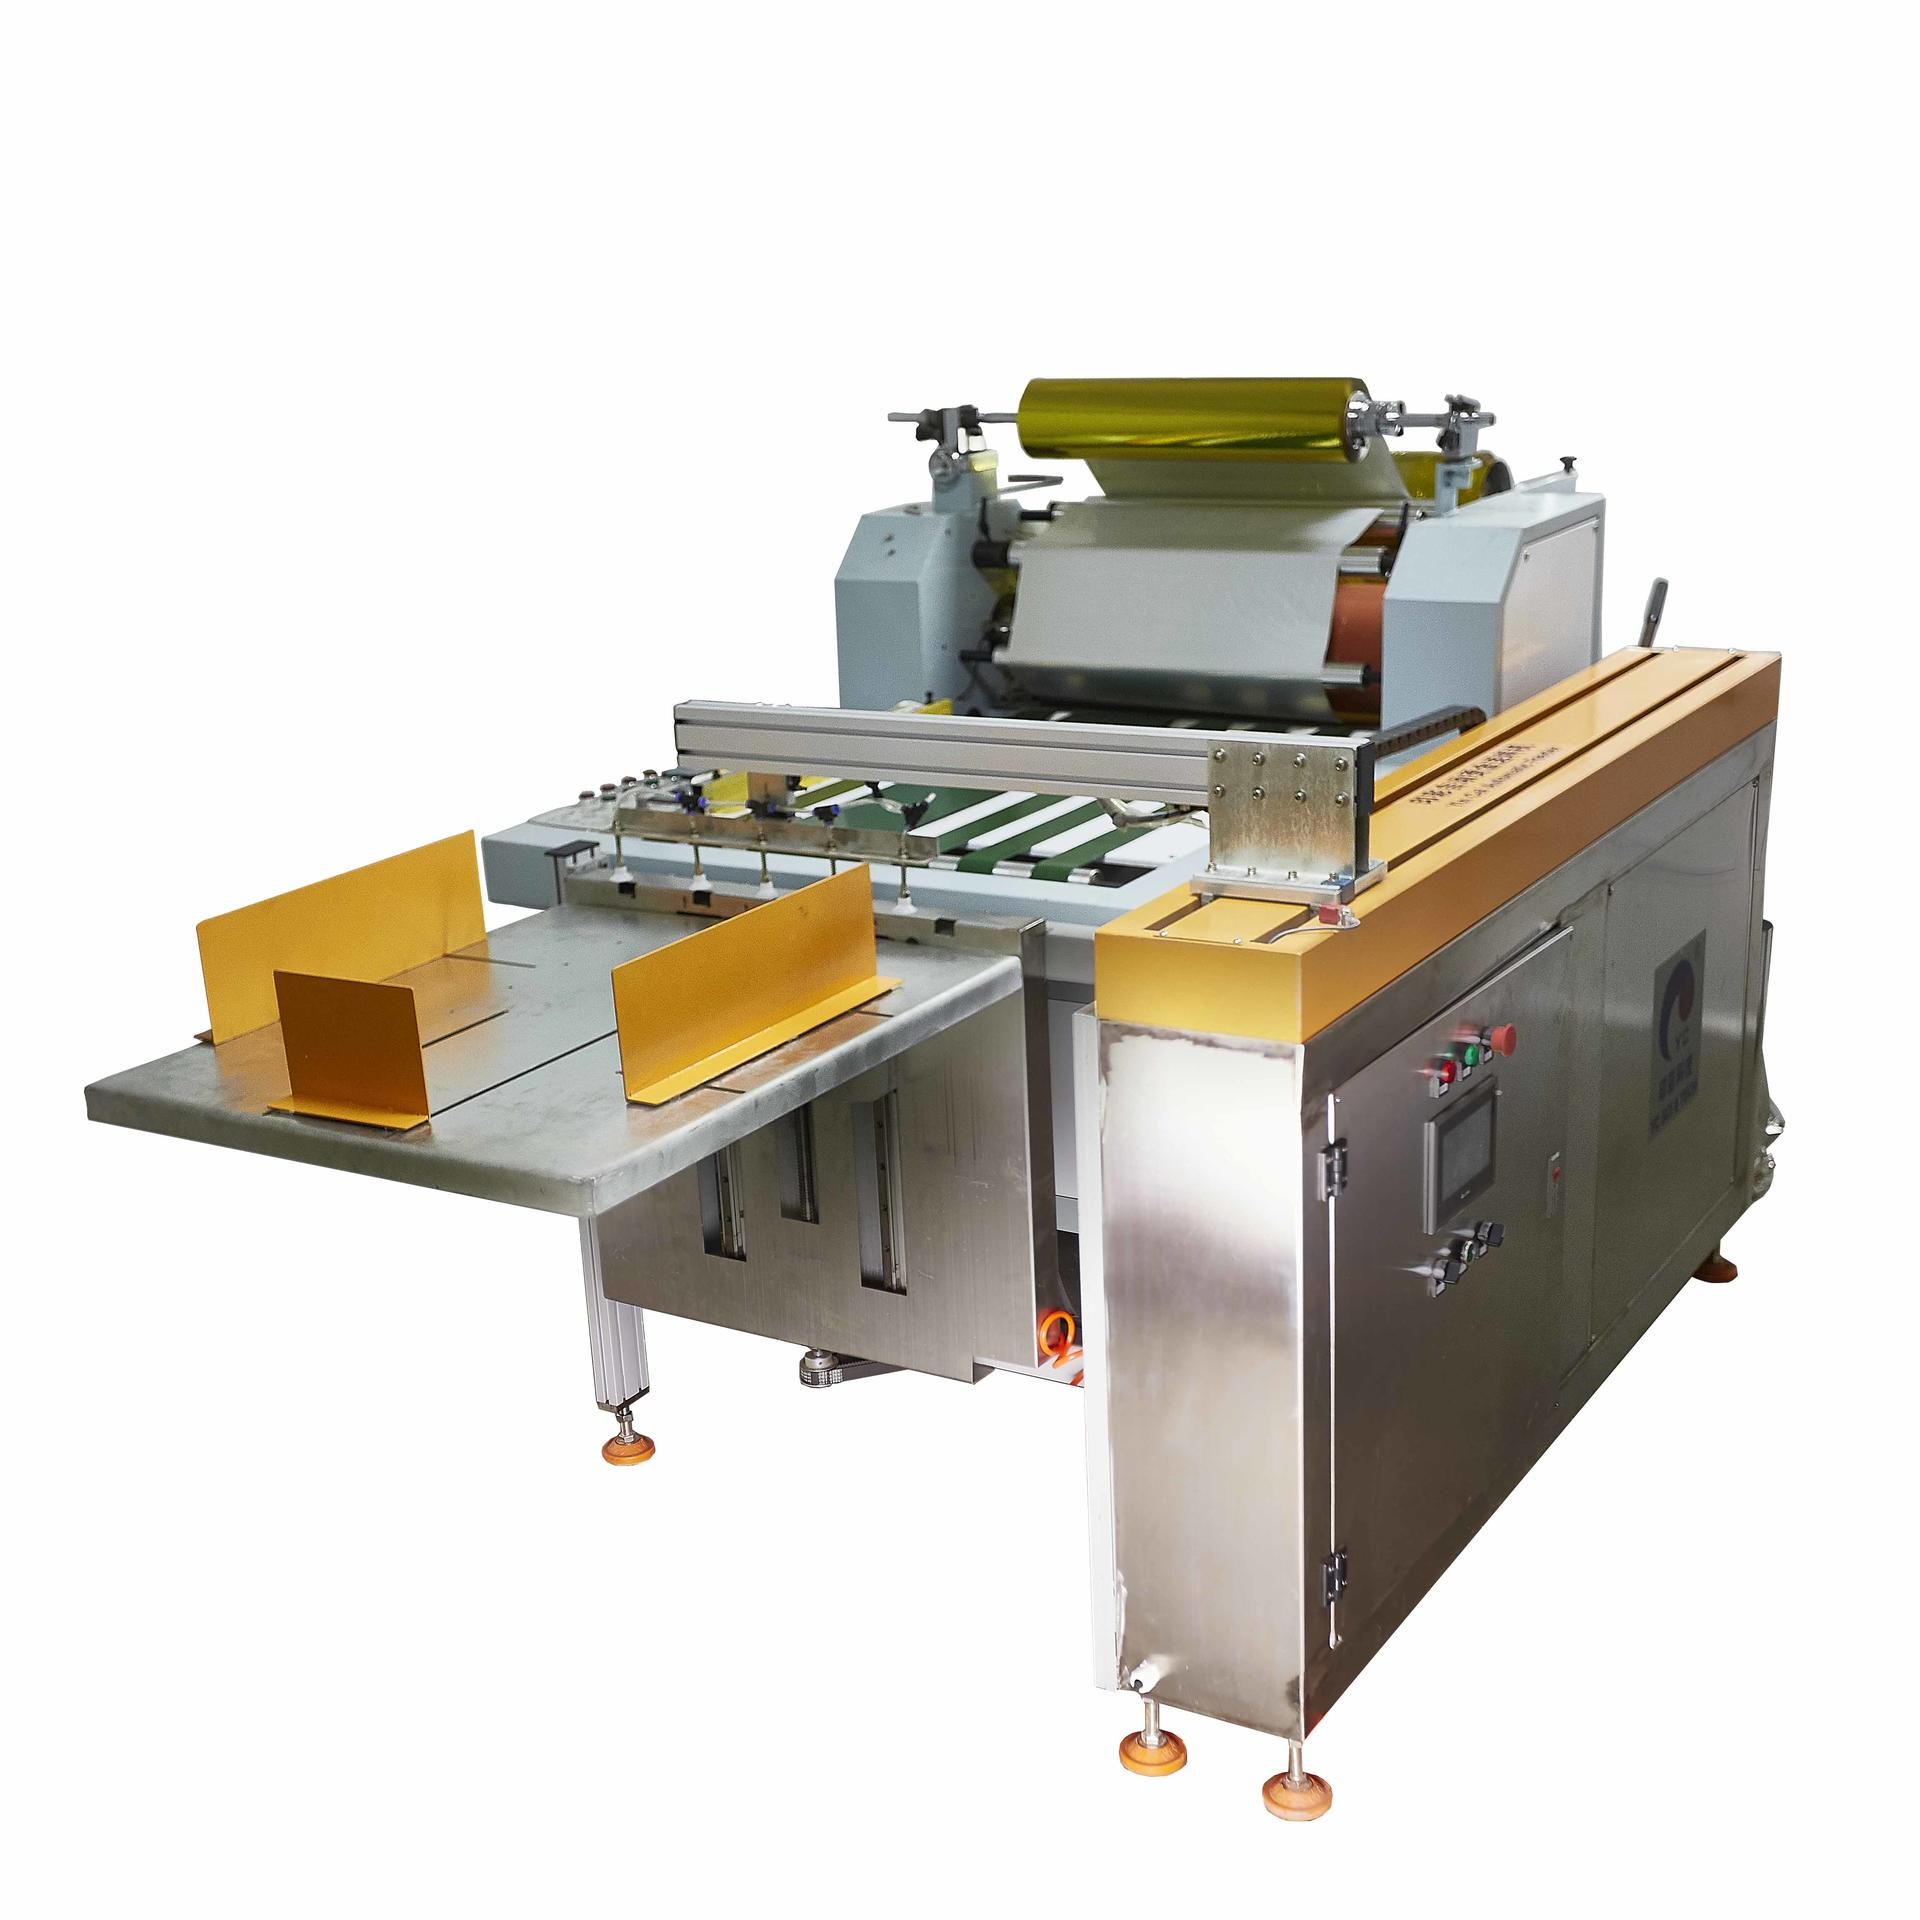 Automatic Feeder for Hot Stamping